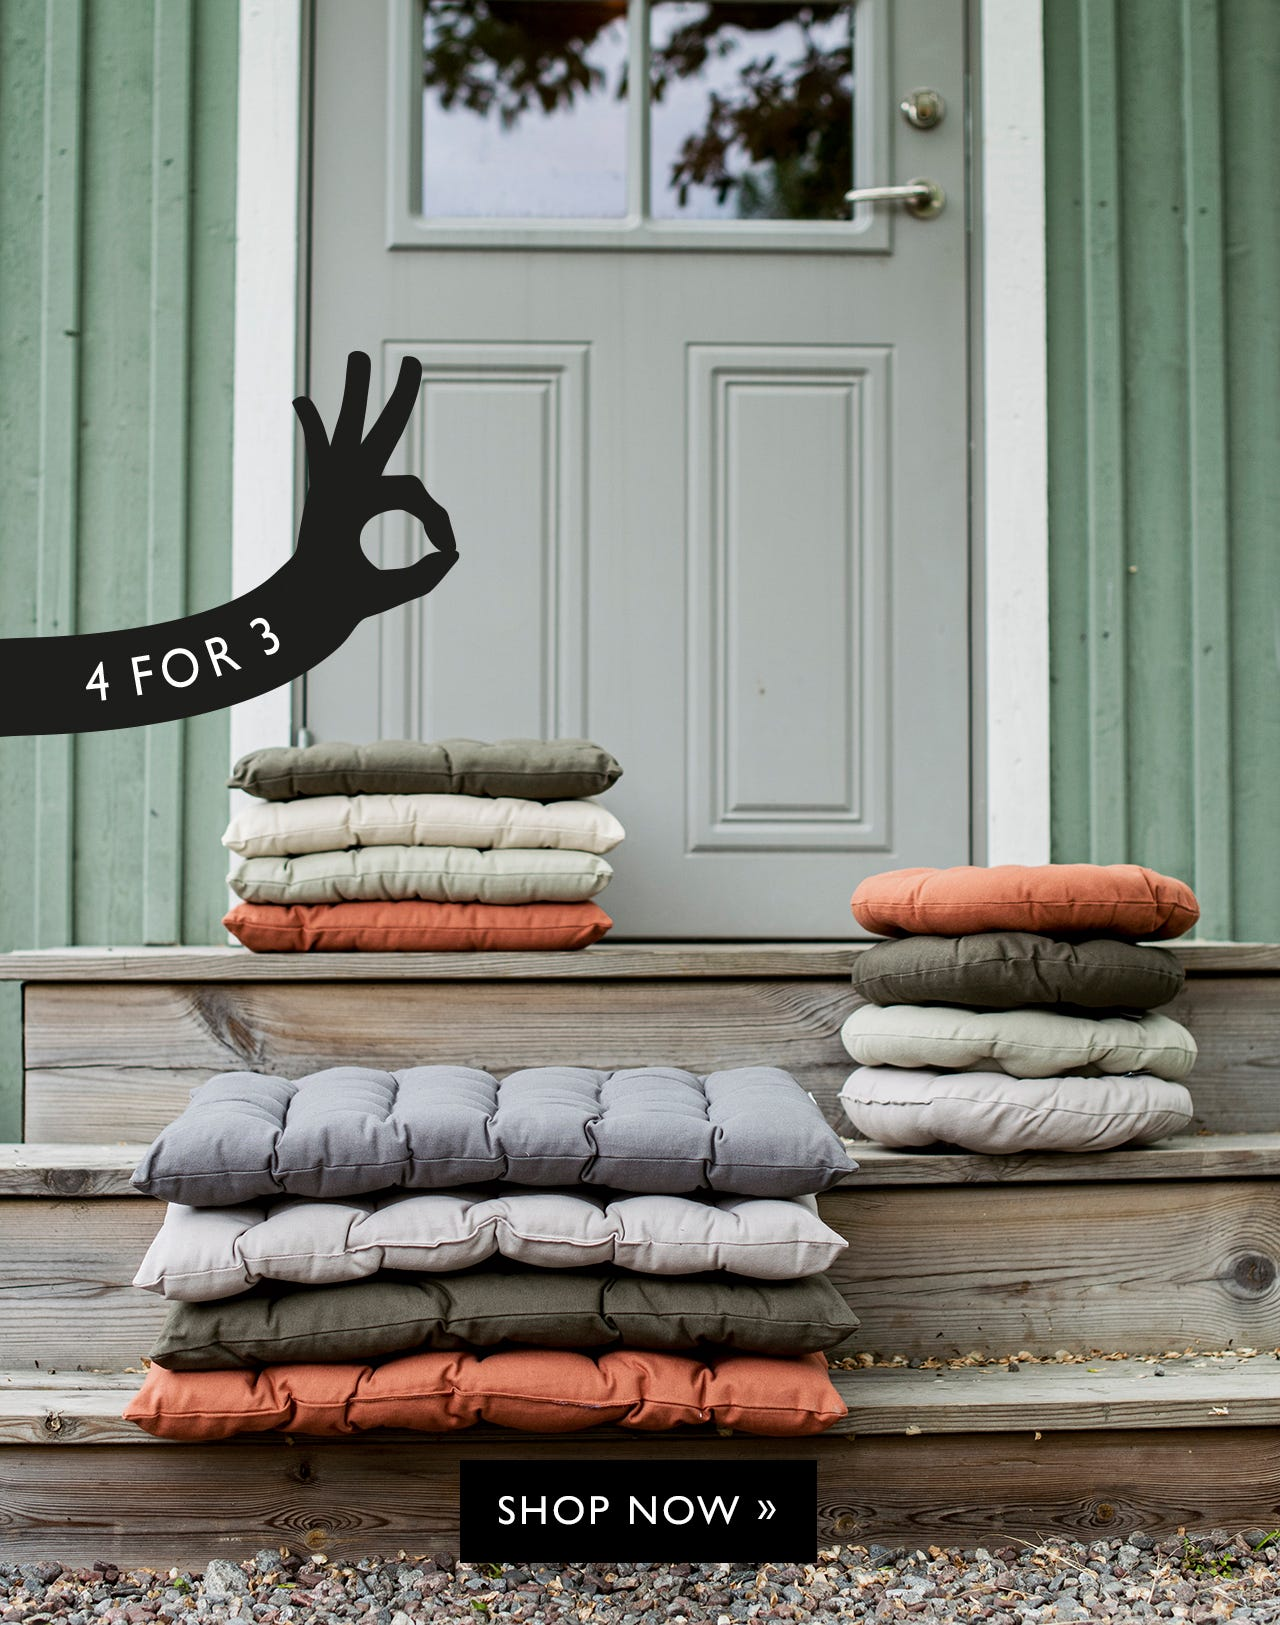 Community deal - 4 for 3 on cushions!